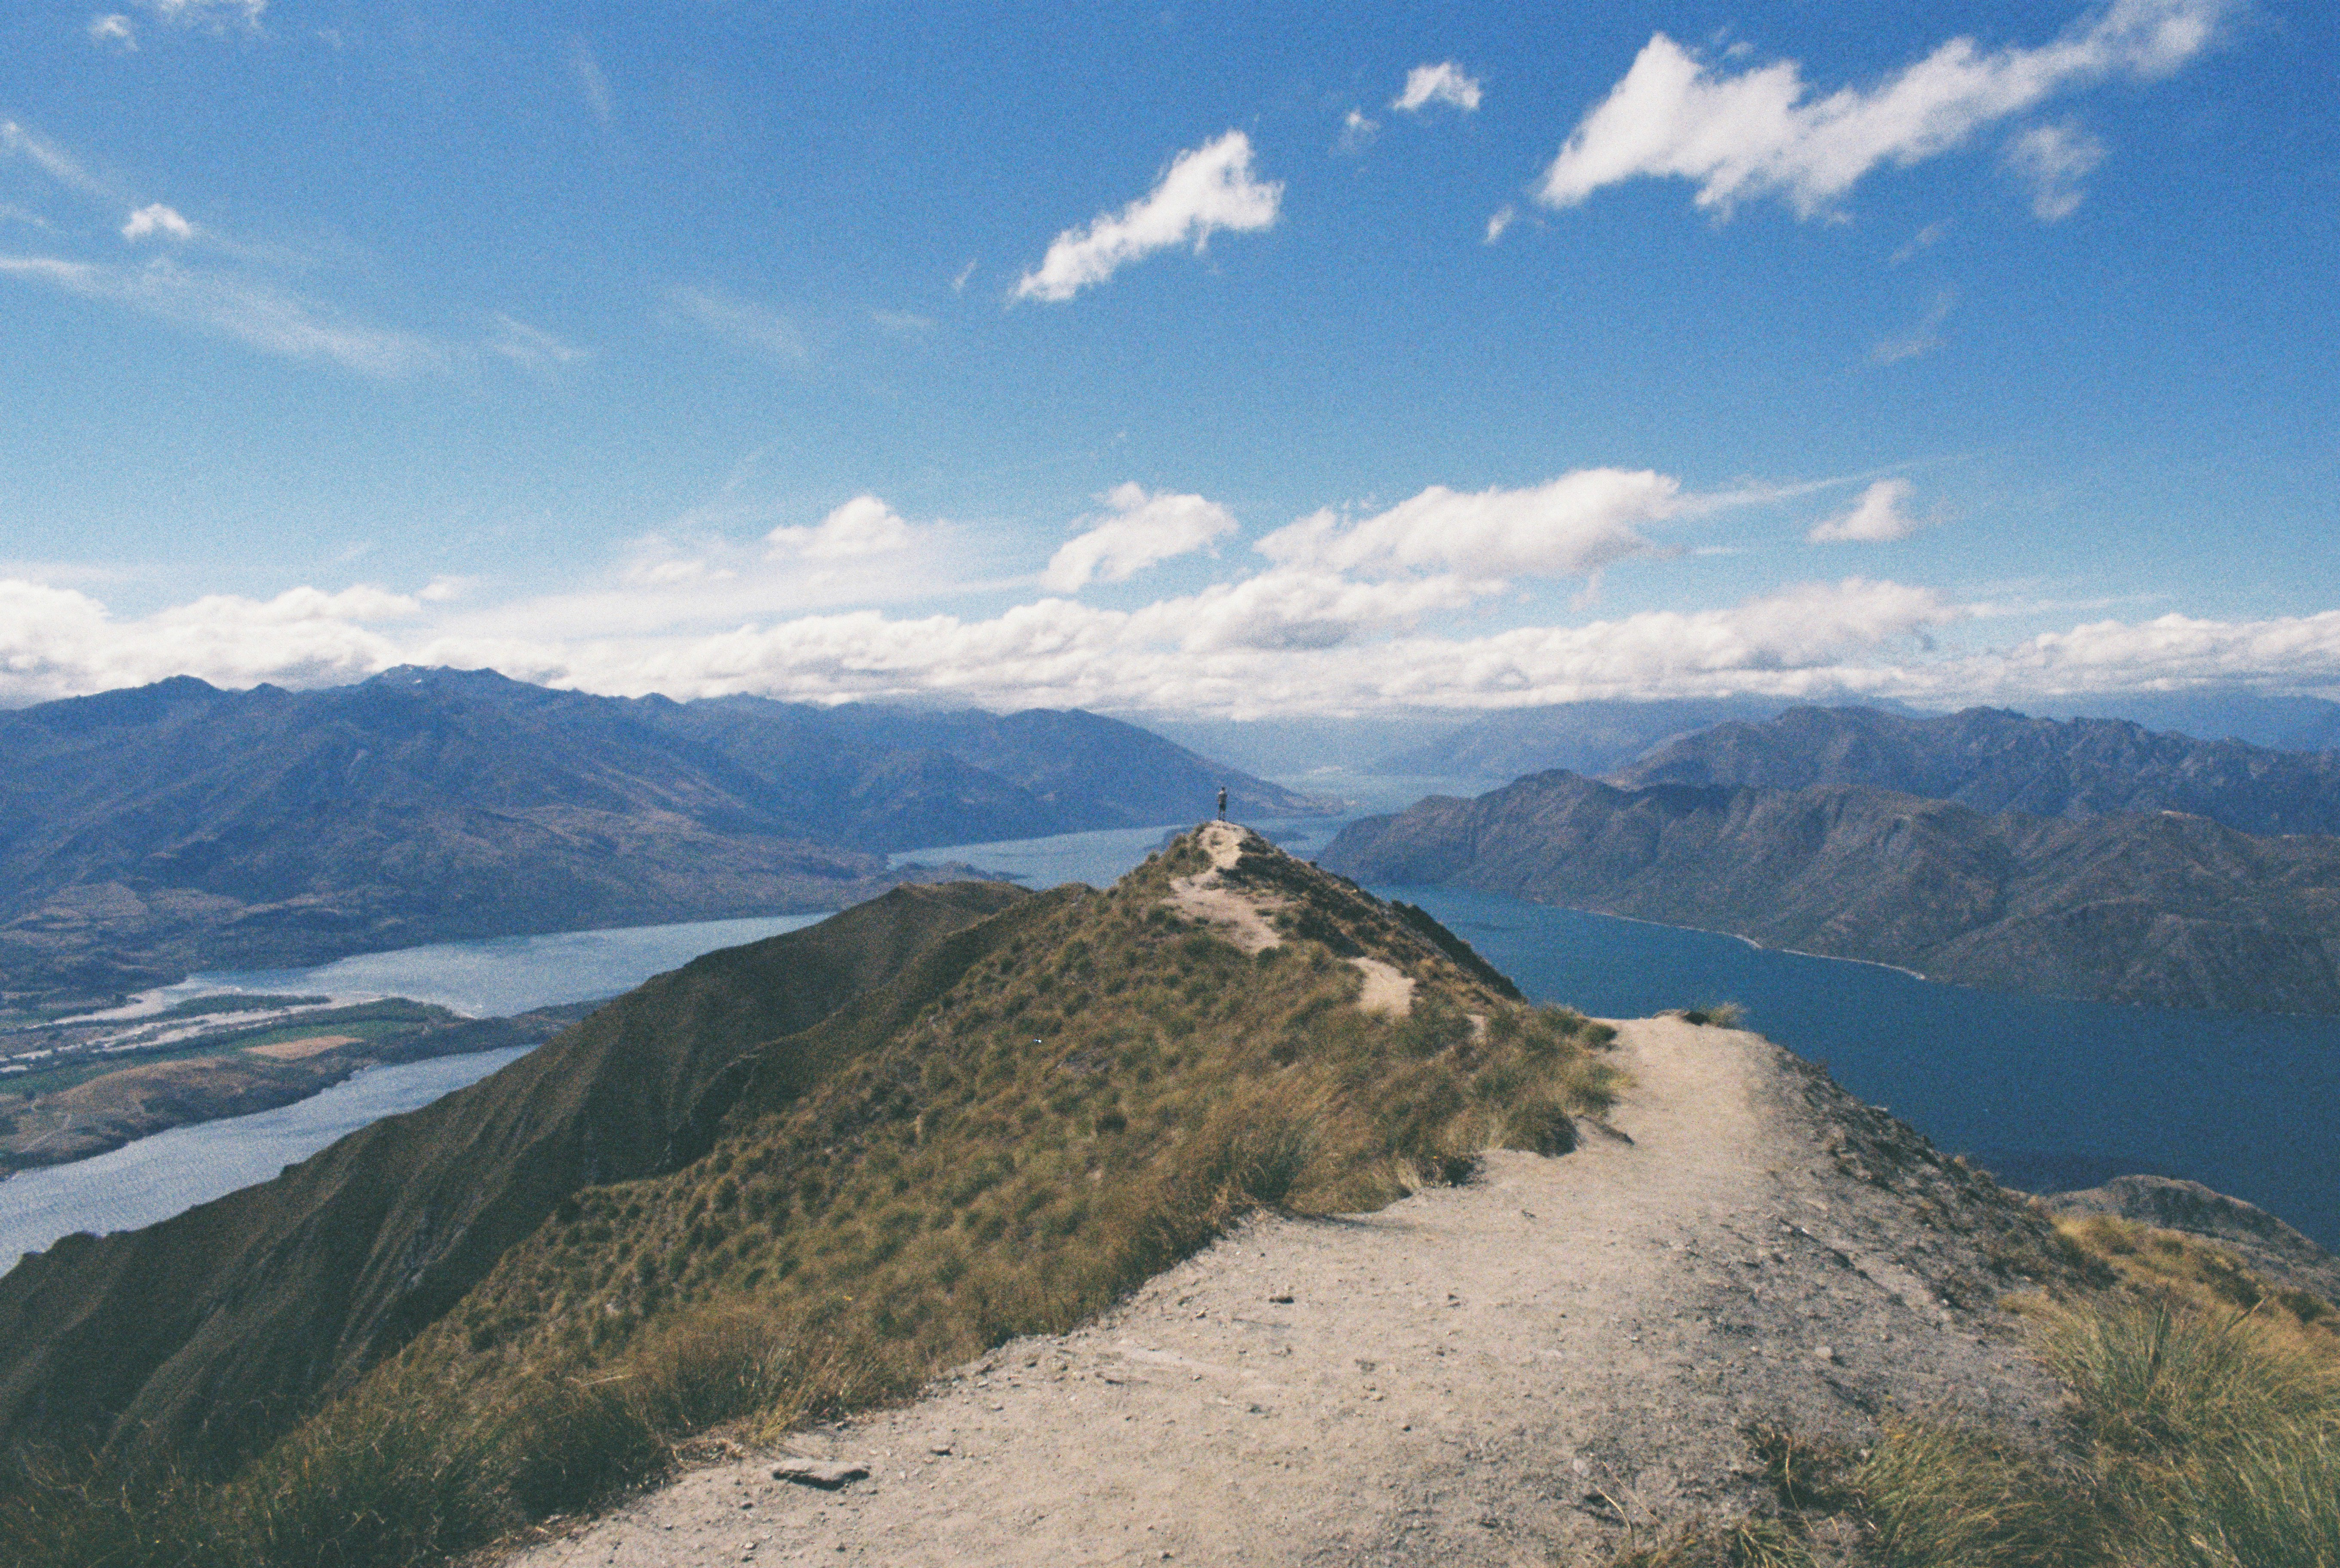 3.5 hours to the top of Roys Peak in Wanaka, New Zealand // Shot on Lomography 100 Color Negative Film